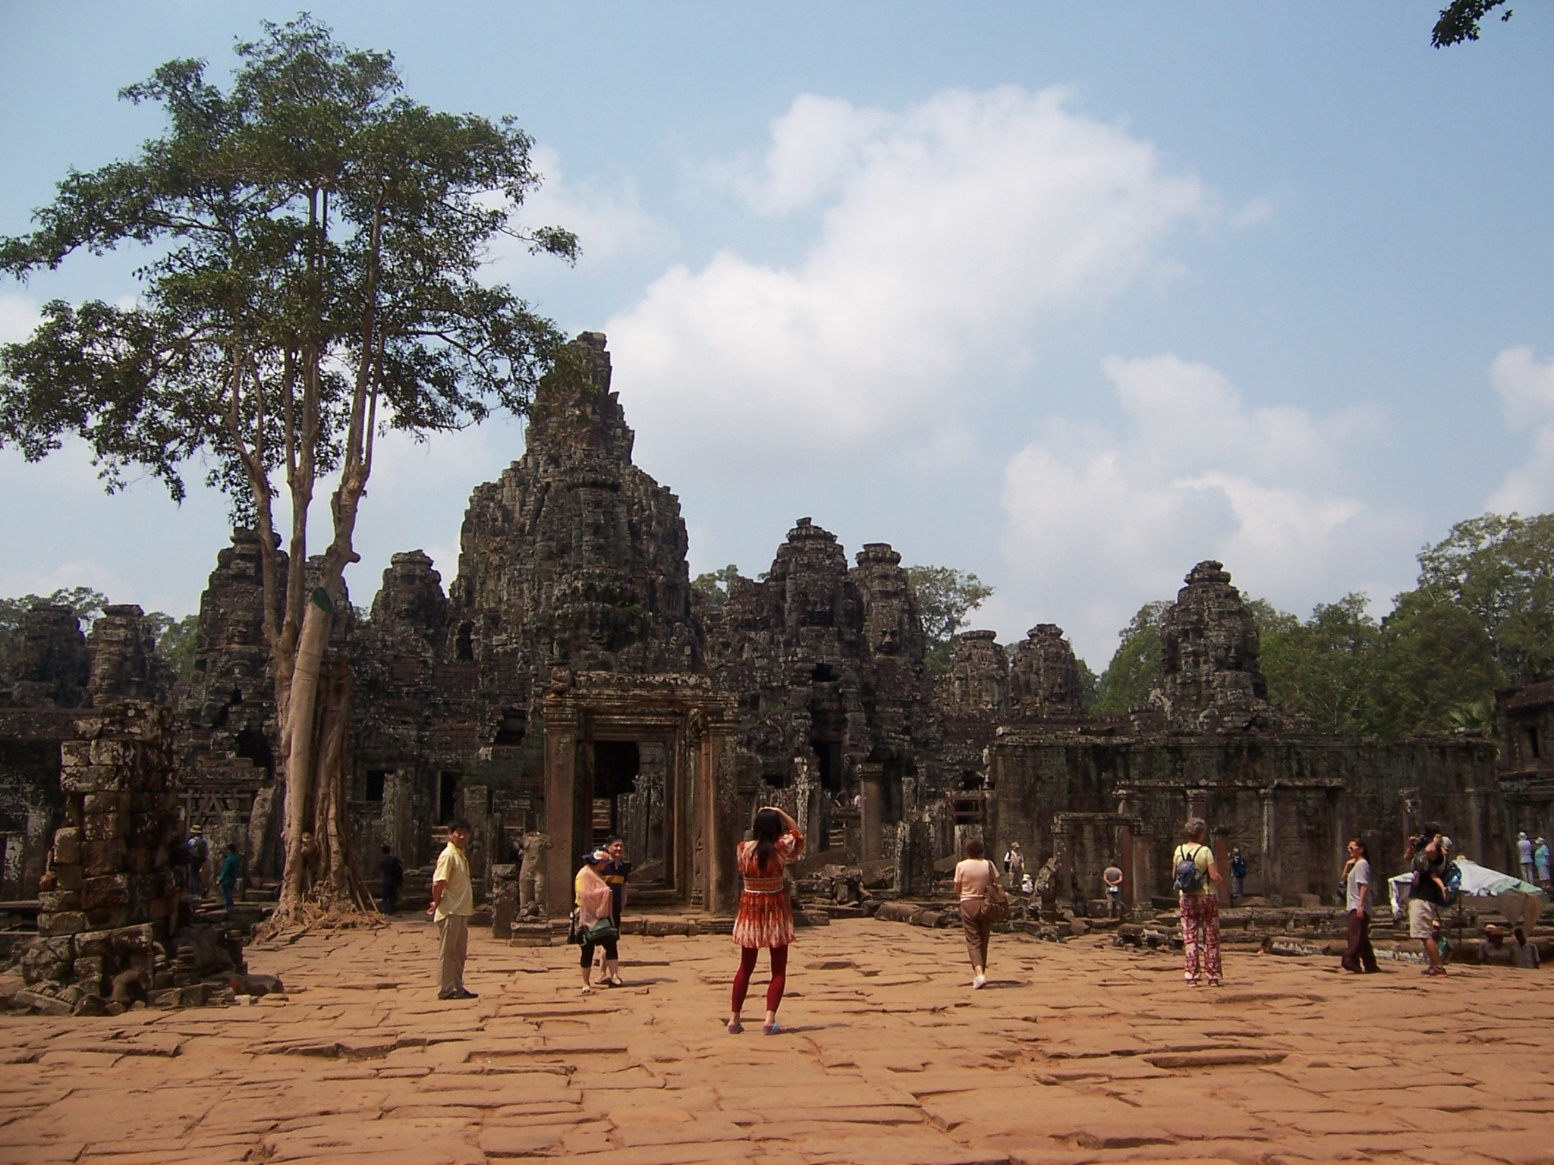 Entrance to the Bayon Ruins in Siem Reap